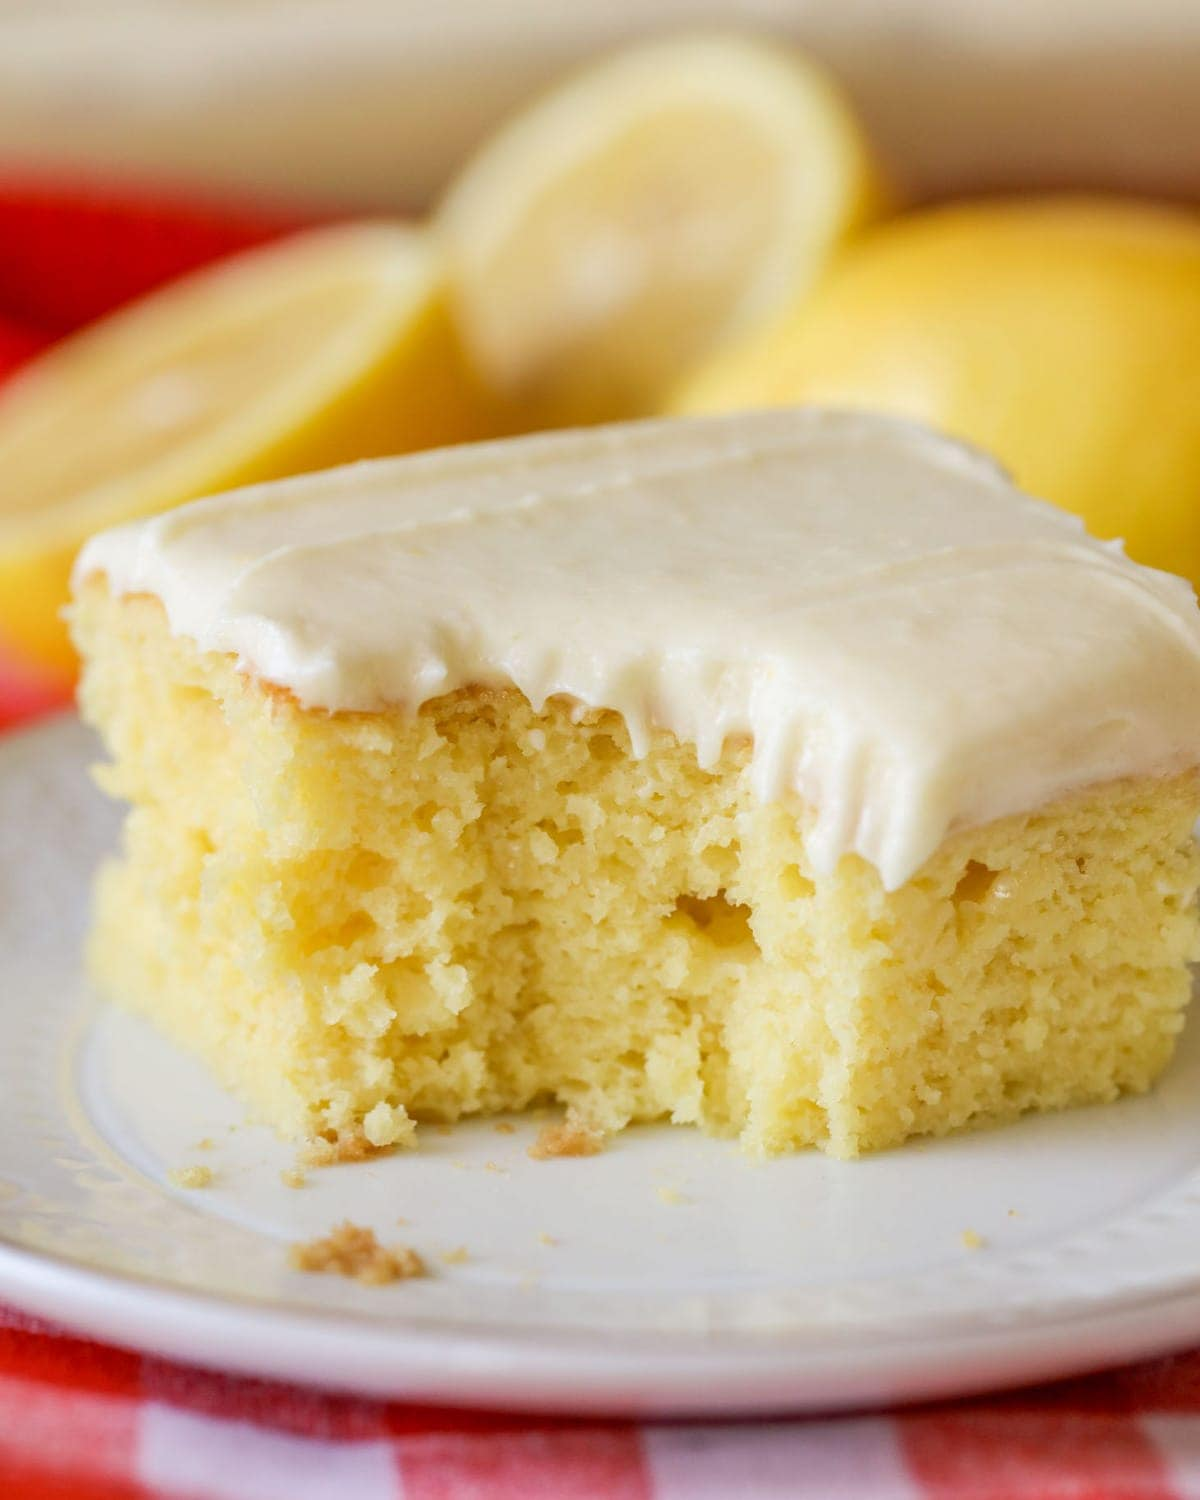 homemade lemon cake with lemon frosting on a white plate